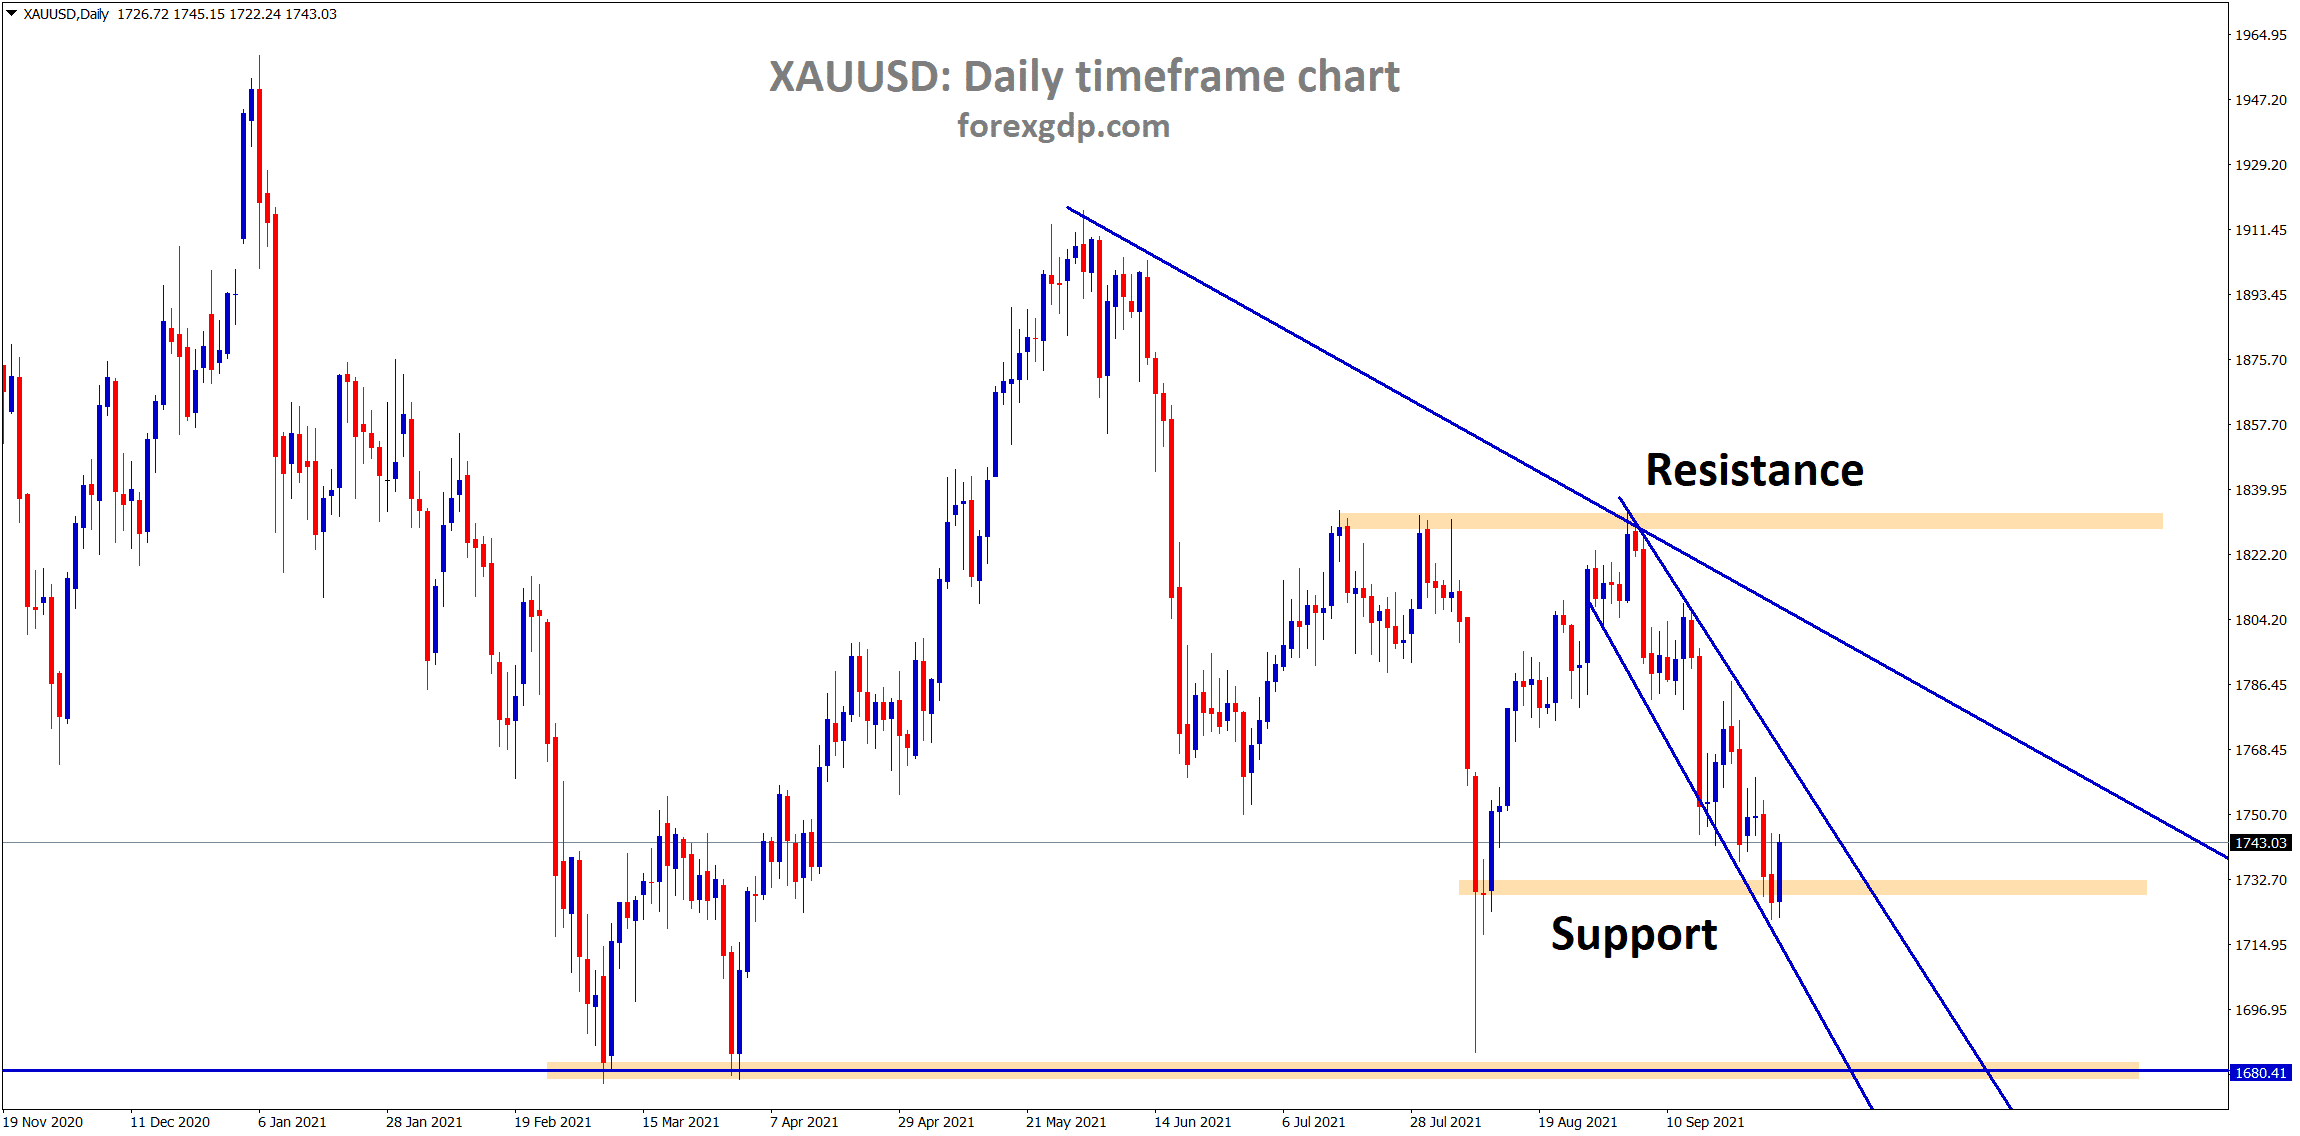 Gold price is rebounding from the horizontal support area and the lower low level of the minor descending channel